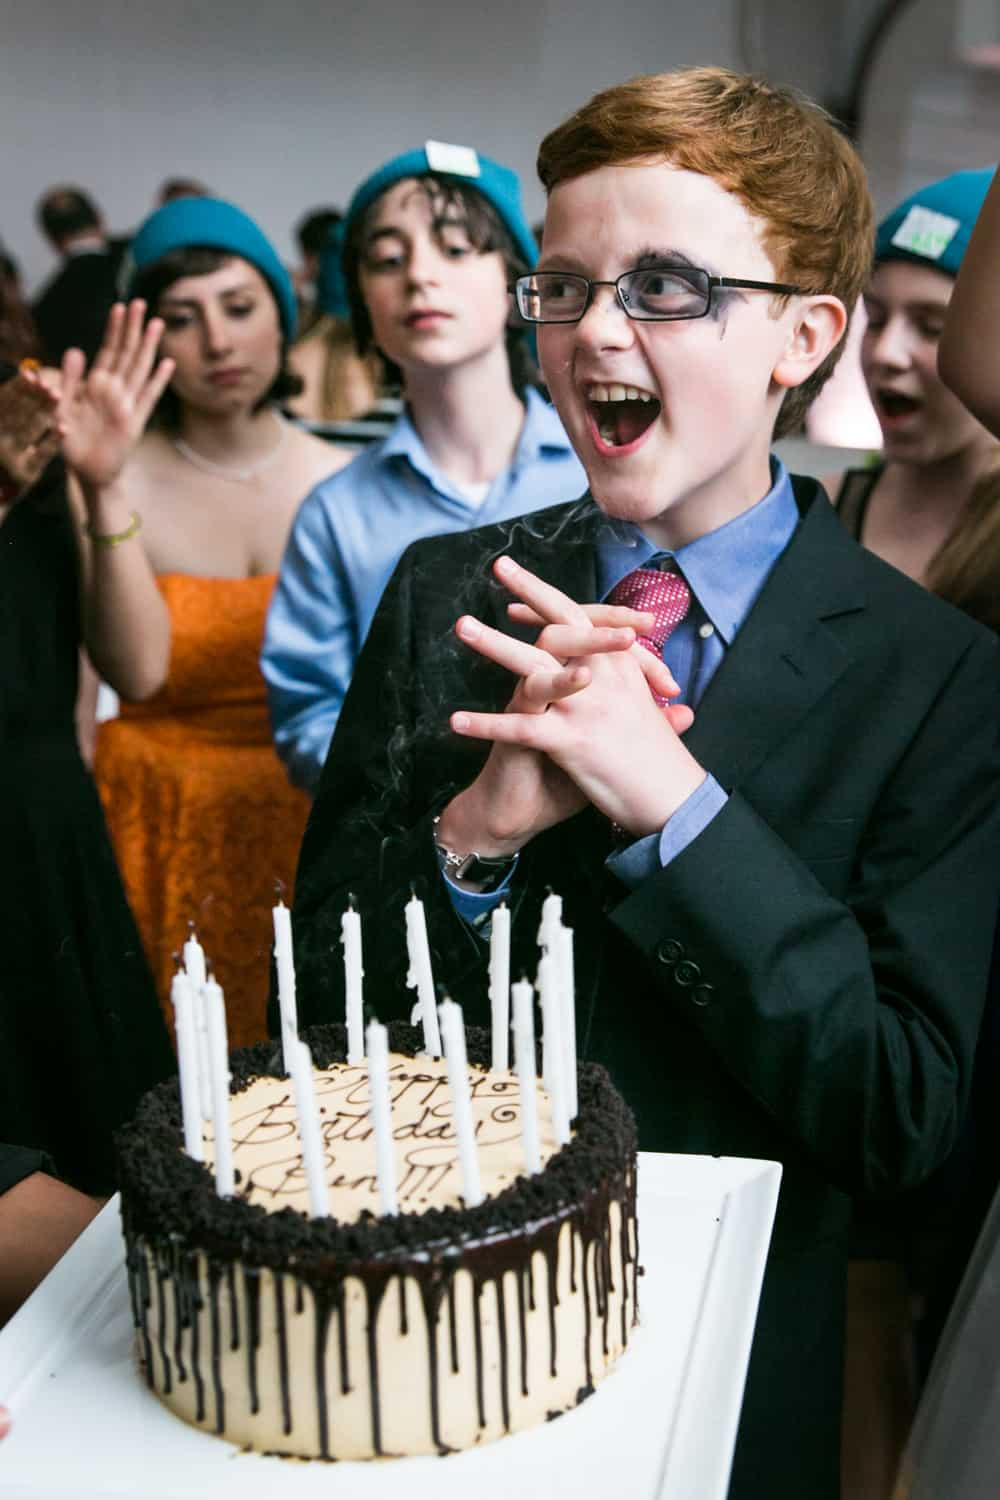 Boy celebrating after blowing out candles for an article on how to plan the perfect bar mitzvah